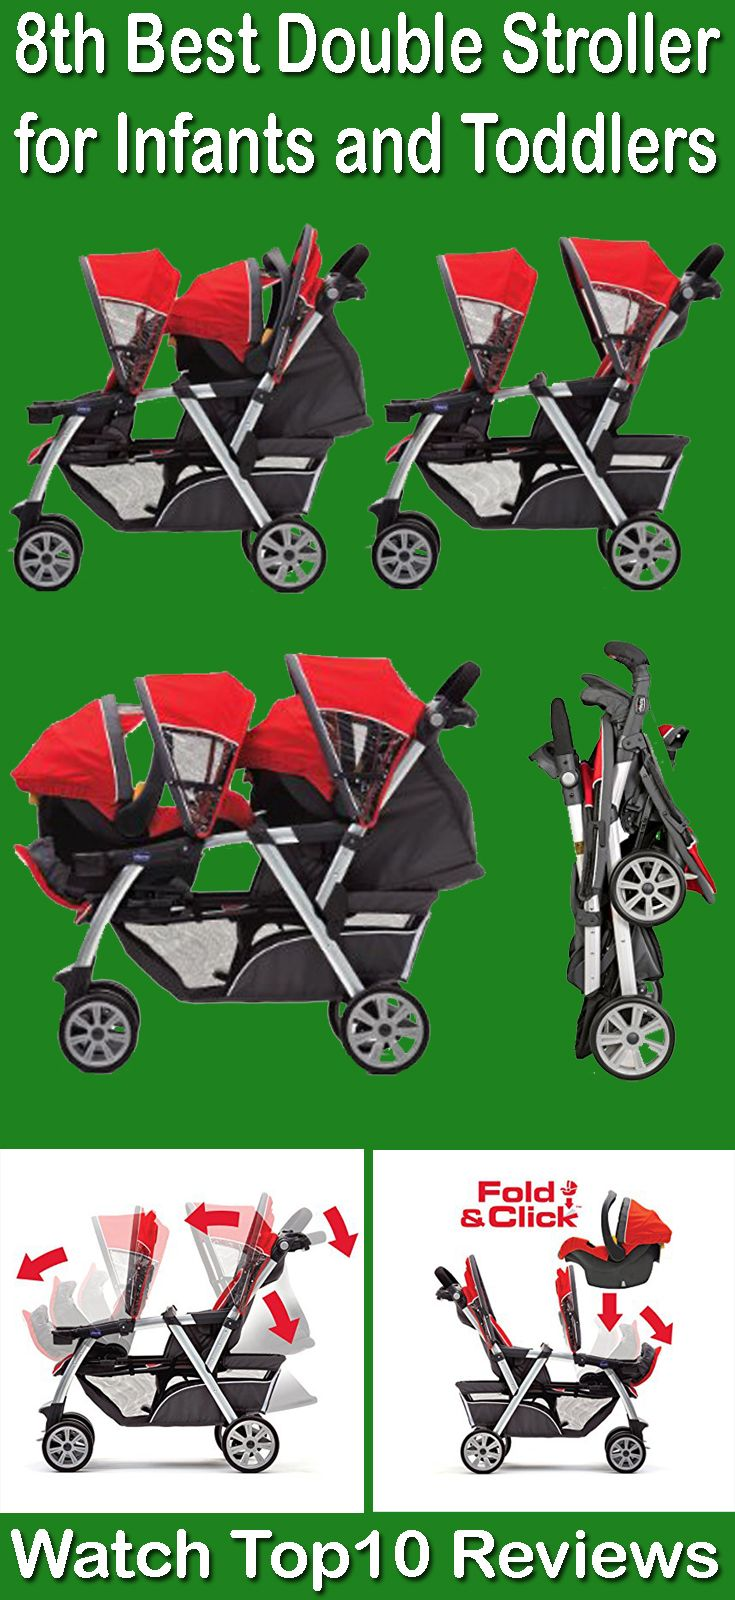 Chicco Cortina Together Double Stroller: You can make travel easier with this multi-configuration, KeyFit compatible double stroller Chicco Cortina Together Double Stroller. This best doubles stroller for toddler and newborn will keep your newborn baby safe and comfort. You can add Prams and Car seat with this best strollers.